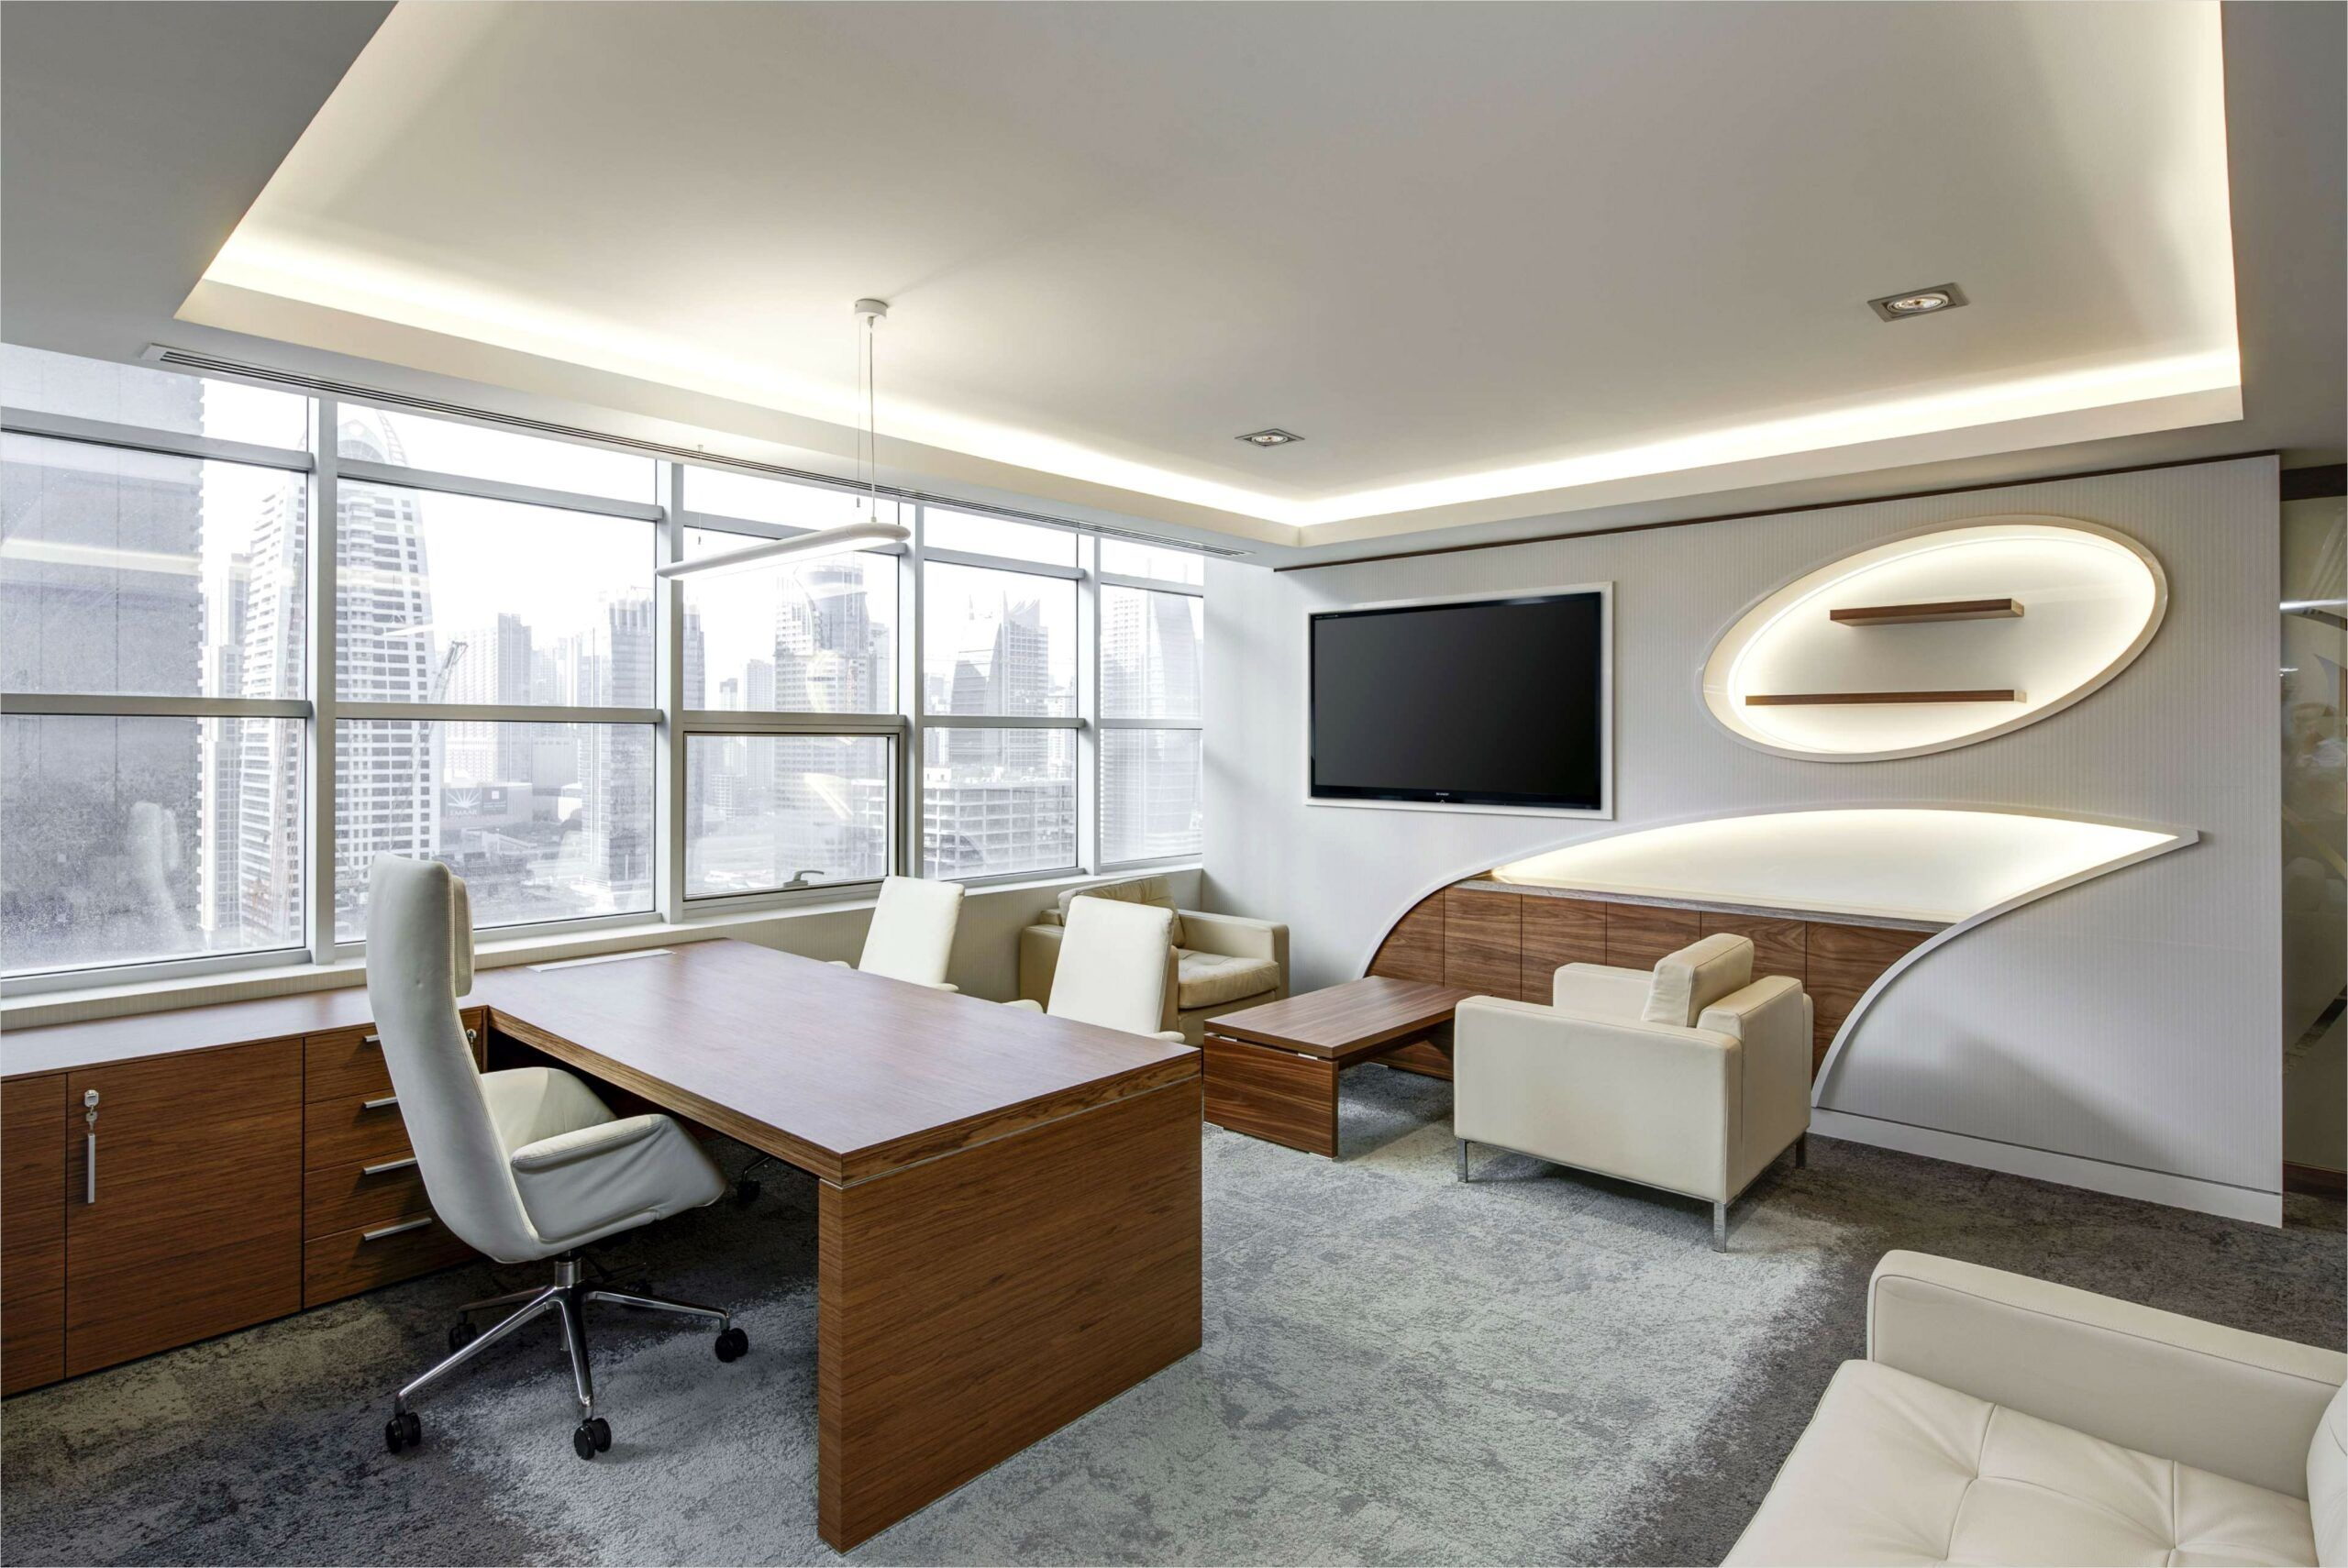 4k Interior Office Wallpaper In 2020 With Images Office